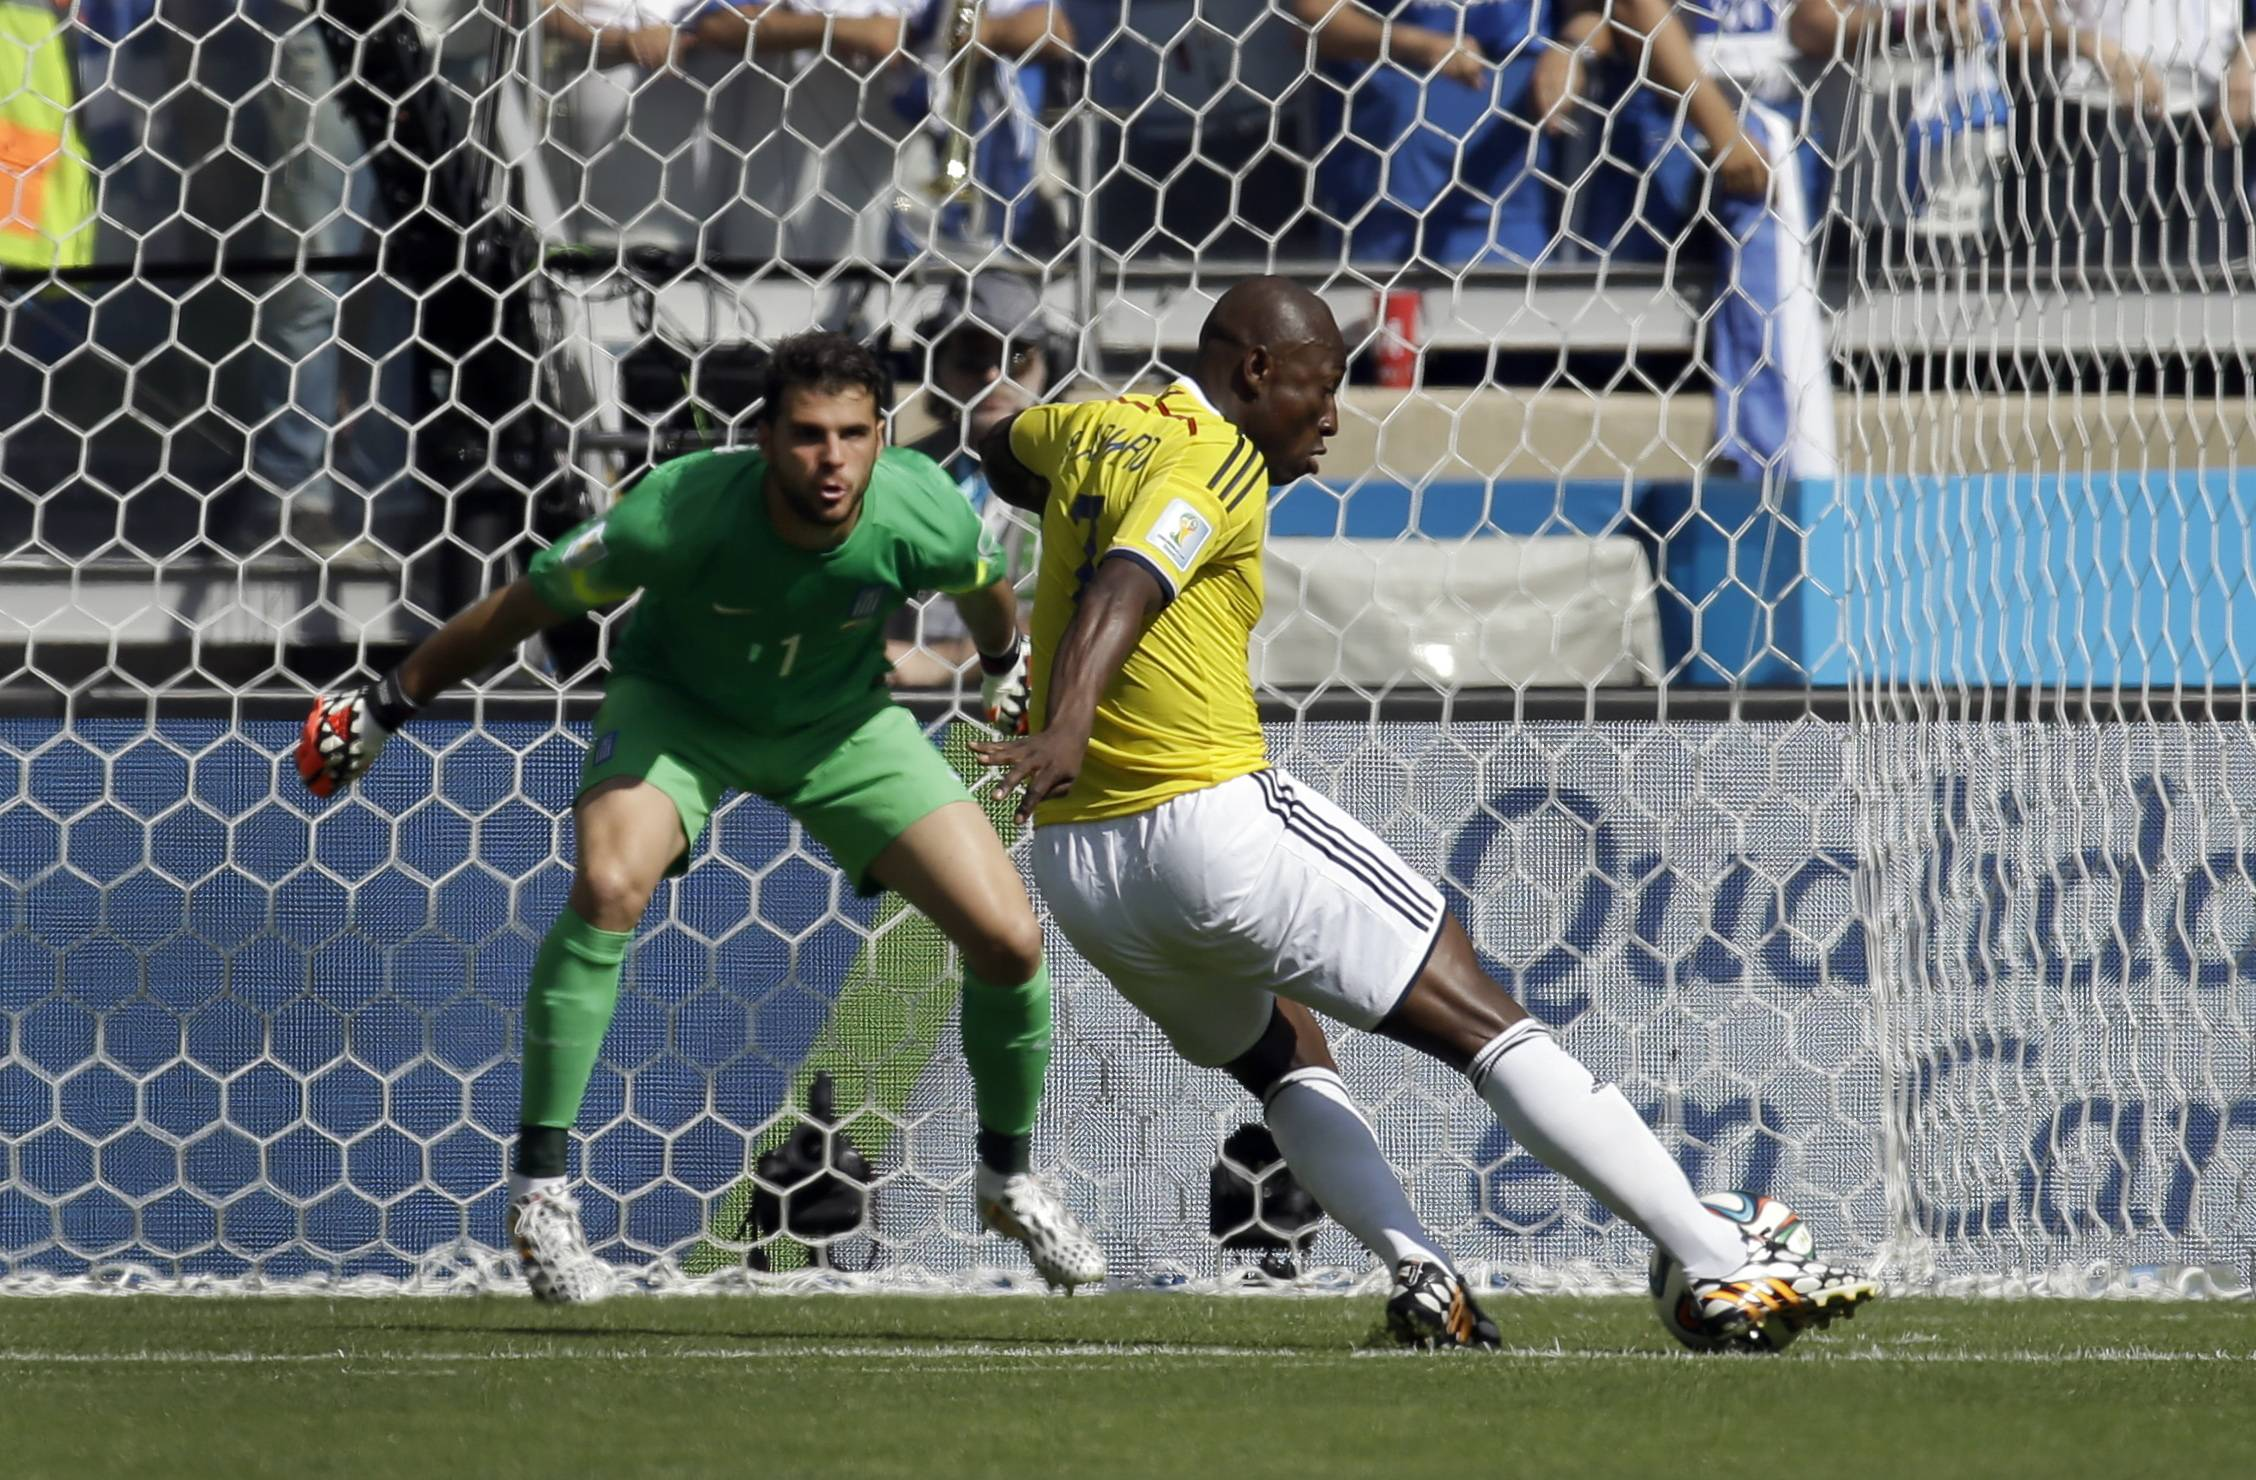 Colombia started its first World Cup campaign in 16 years in dazzling fashion, beating Greece 3-0 to open Group C on Saturday in front of a big, loud pro-Colombian crowd.Left back Armero opened the scoring in the fifth minute when his deflected shot rolled past Greece goalkeeper Orestis Karnezis. Striker Teofilo Gutierrez poked in Colombia's second goal from a deflected corner in the 58th and James Rodriguez capped it off with a low shot in stoppage time after a slick backheel flick from Juan Cuadrado.